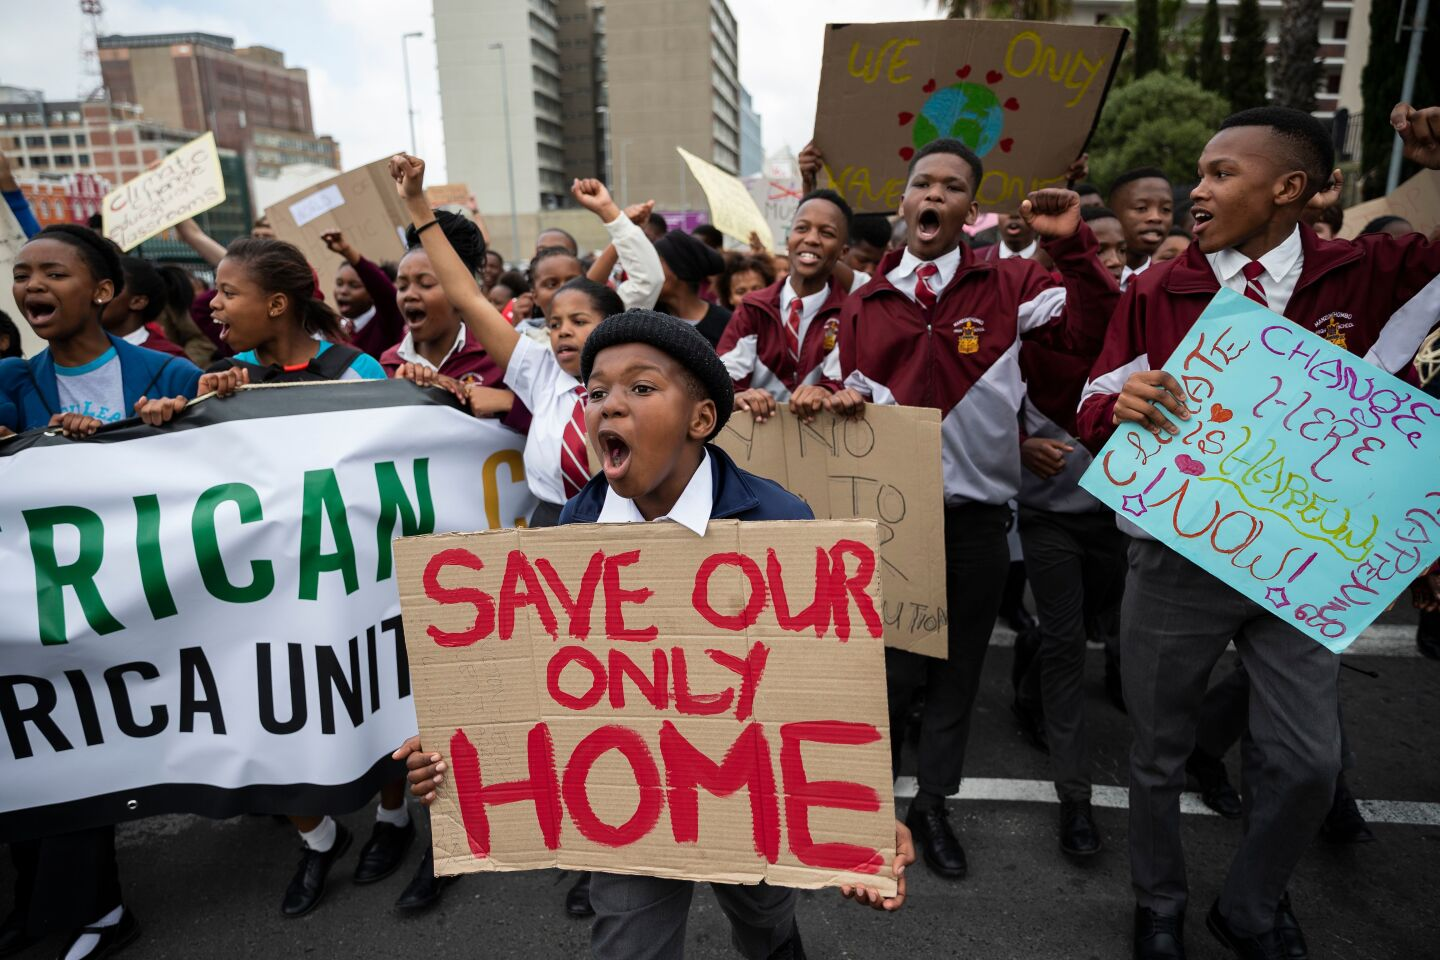 Mandatory Credit: Photo by NIC BOTHMA/EPA-EFE/REX (10419322d) Protesters take part in the Global Climate Strike as they march to parliament in Cape Town, South Africa, 20 September 2019. Thousands of children across South Africa joined the global call to action and climate strike protesting in Cape Town calling on government to make radical change in tackling climate change as millions of people around the world are taking part in protests demanding action on climate issues. Cape Town Global Climate Strike, South Africa - 20 Sep 2019 ** Usable by LA, CT and MoD ONLY **